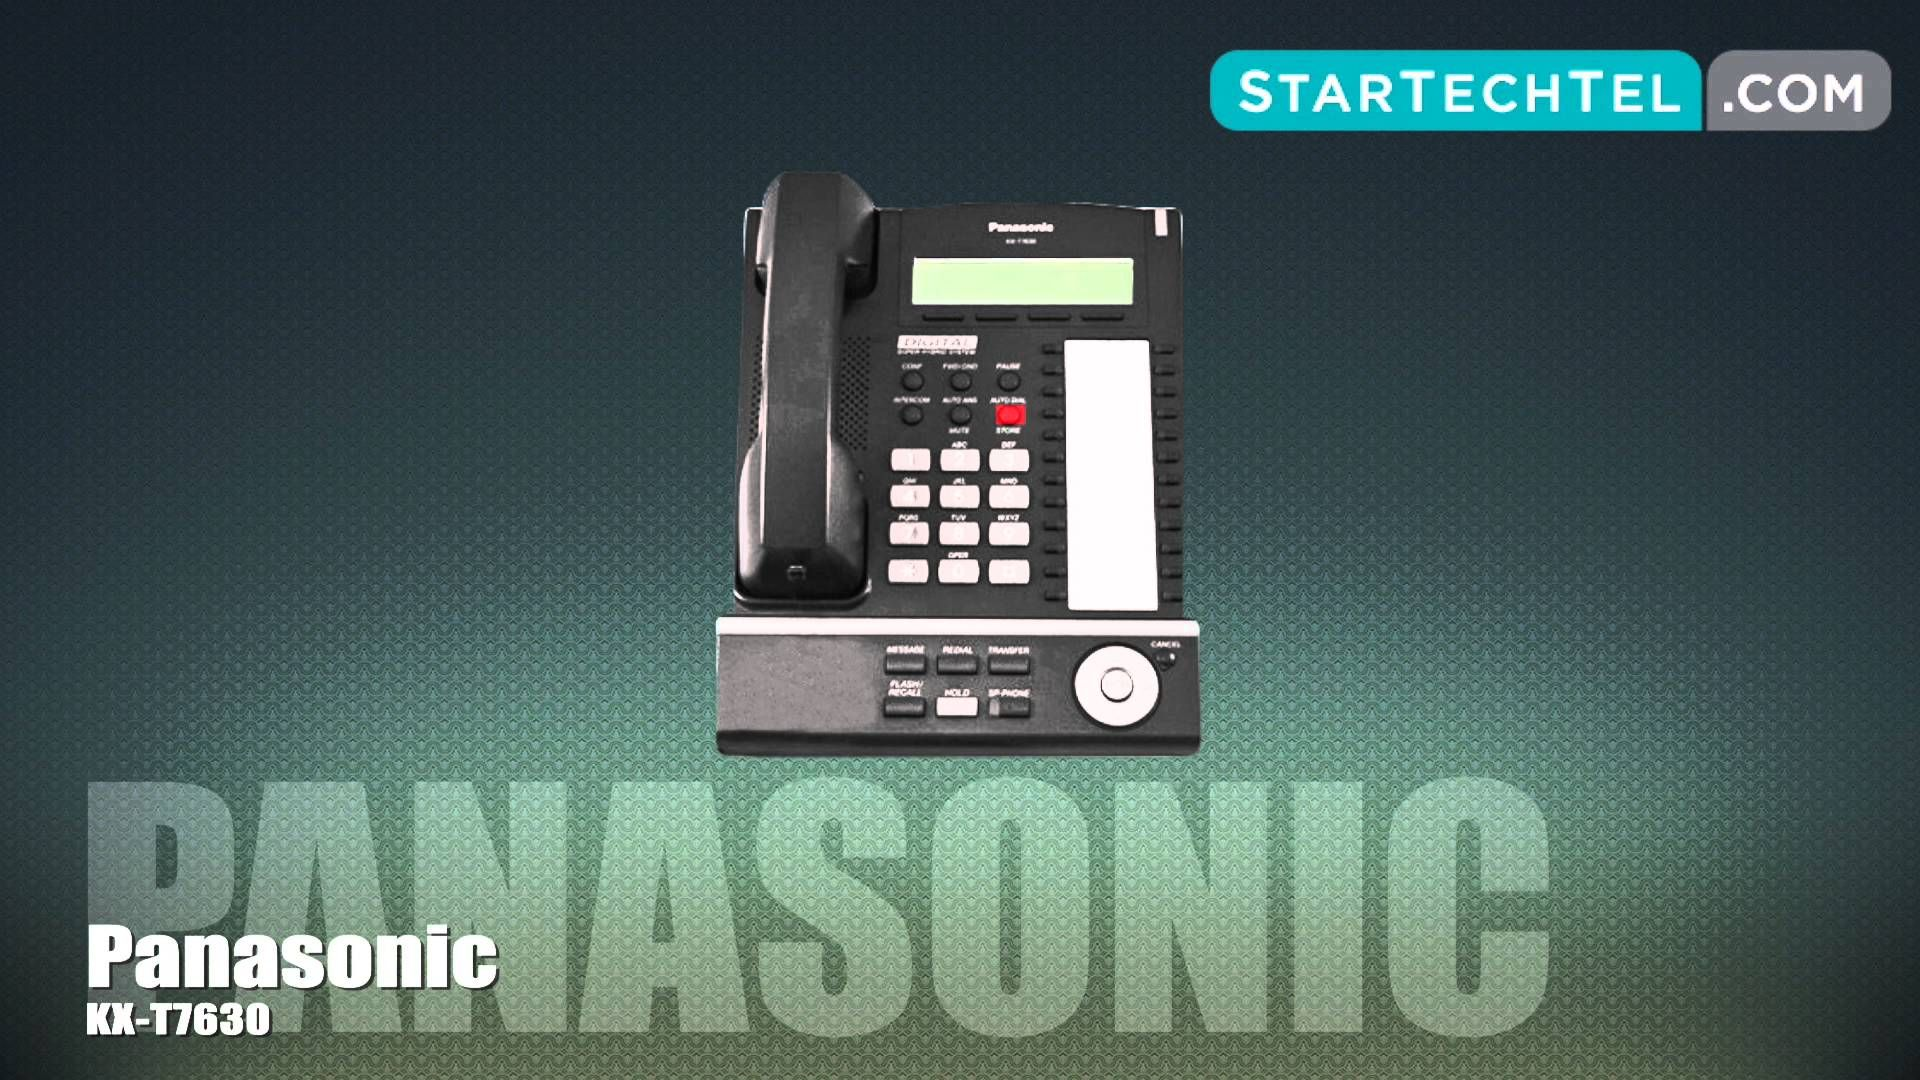 How To Set & Adjust The Ringtone On The Panasonic KX-T7630